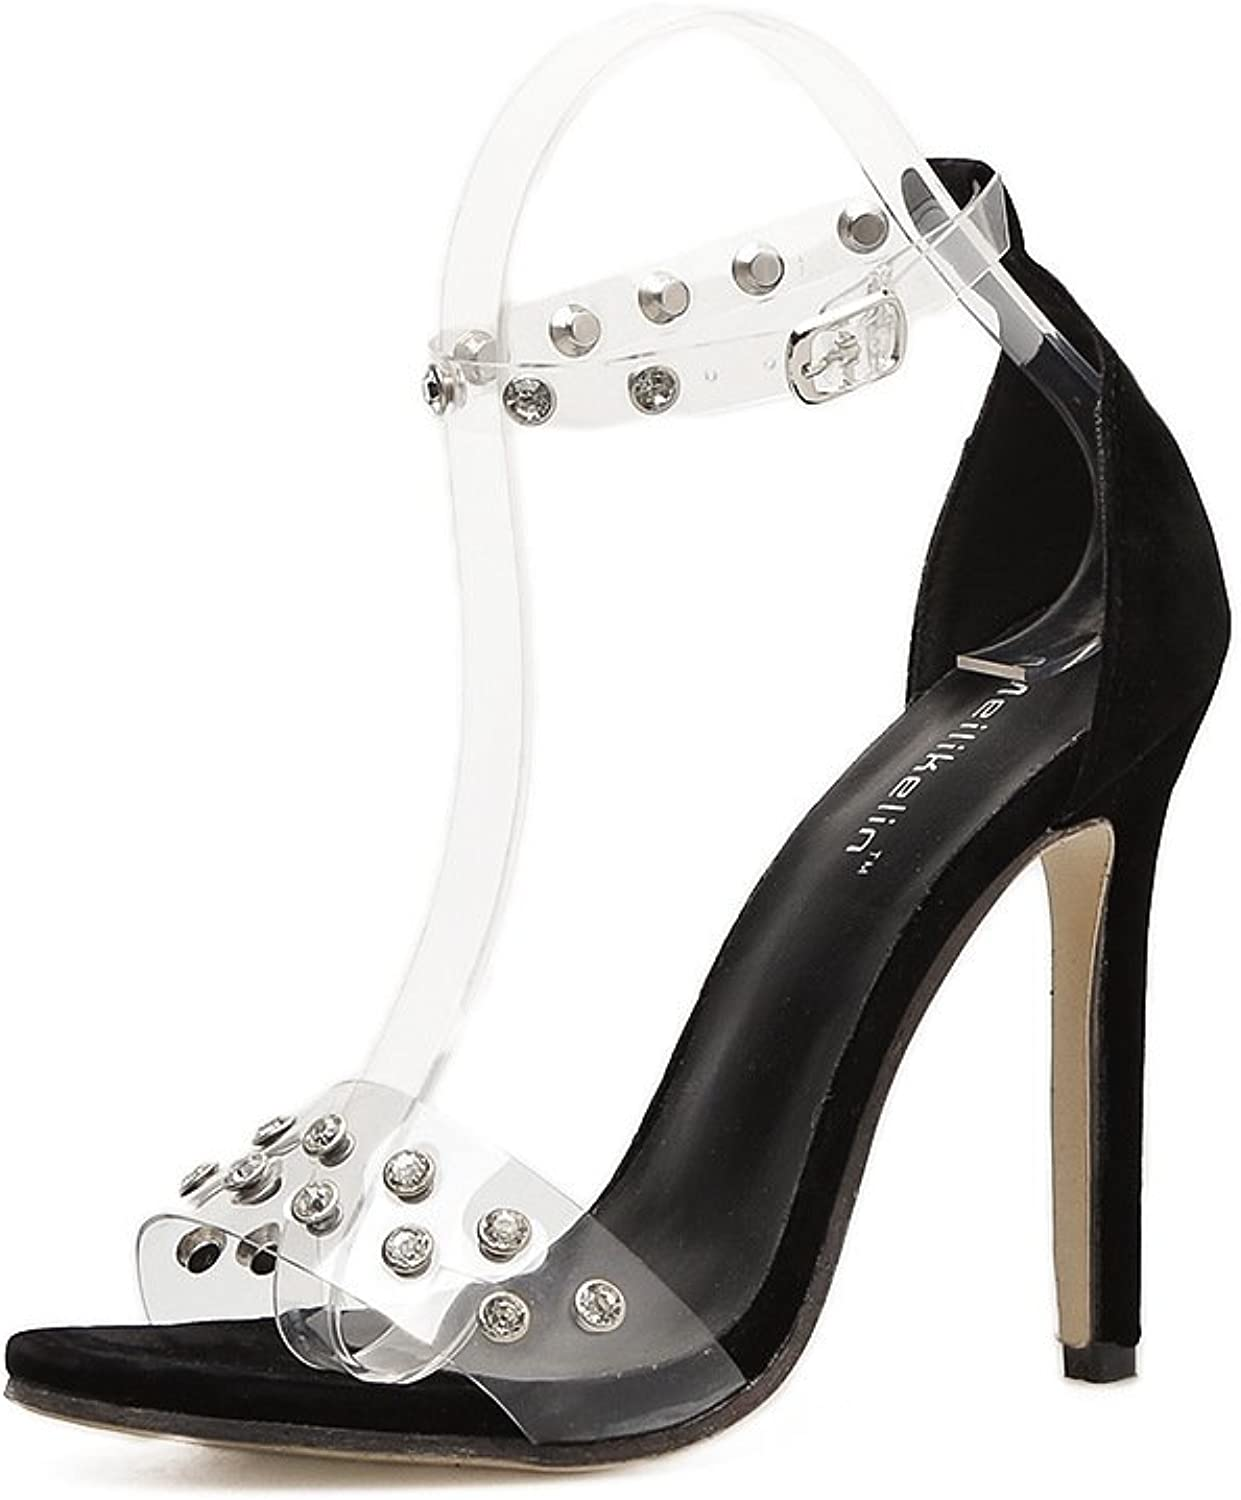 The Water Drilling Rivets Water Drilling Rivets Flat with high-Heeled Sandals